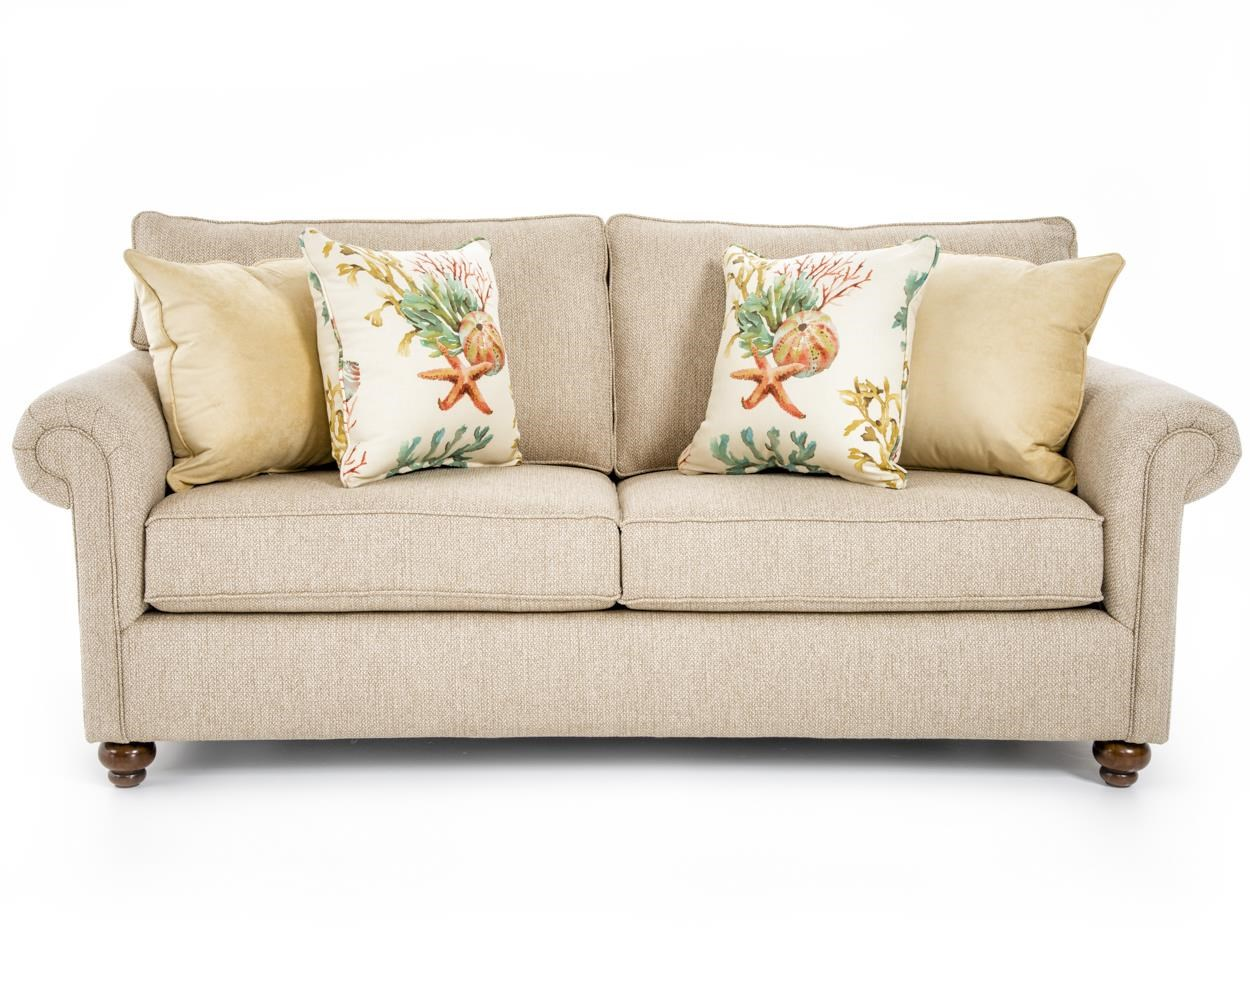 Broyhill Furniture Judd Sleeper Sofa - Item Number: 4262-7-4190-08